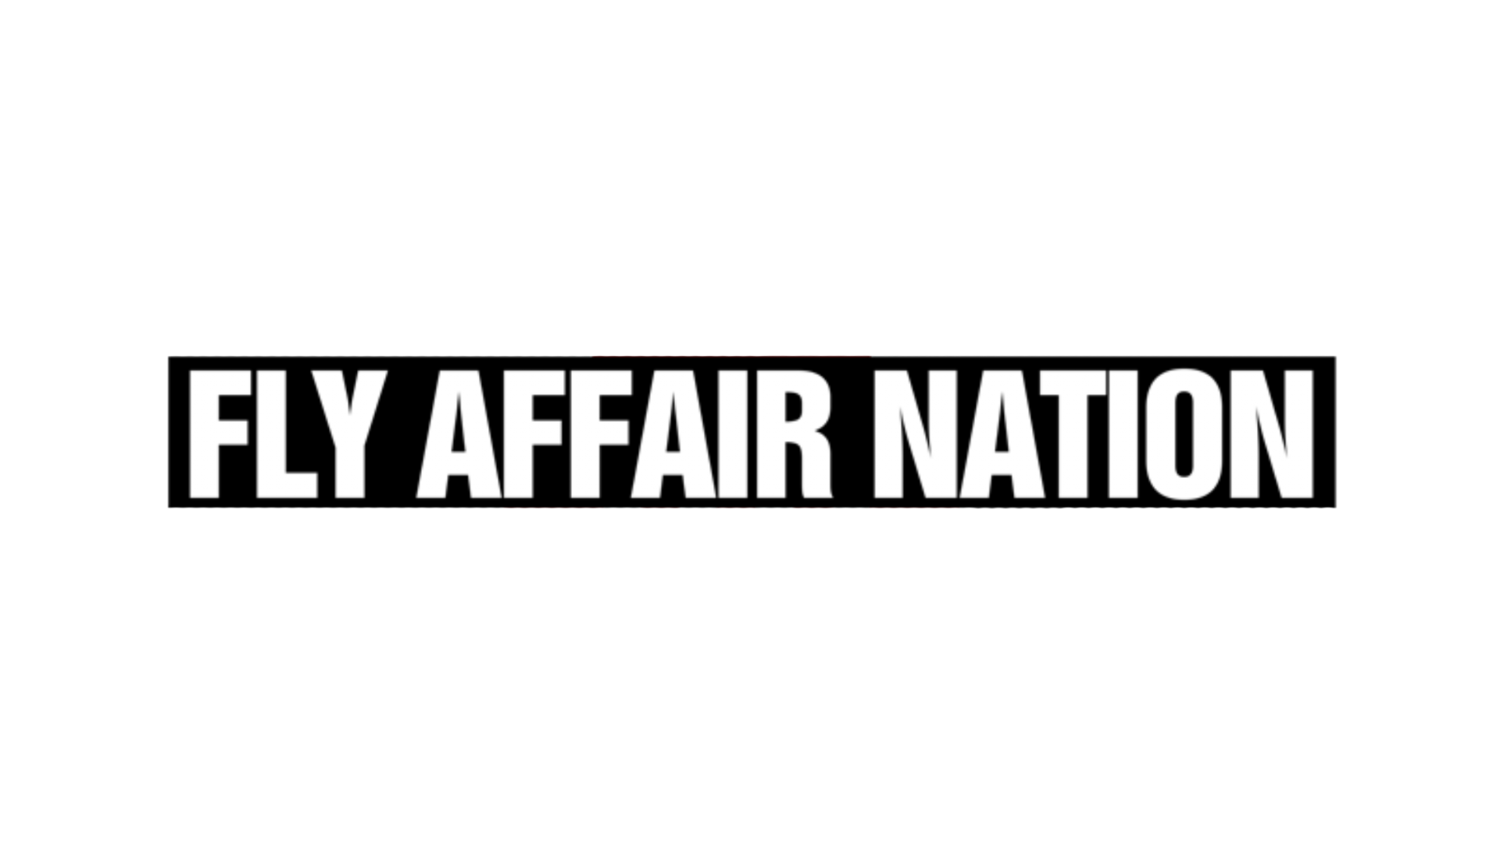 Fly Affair Nation